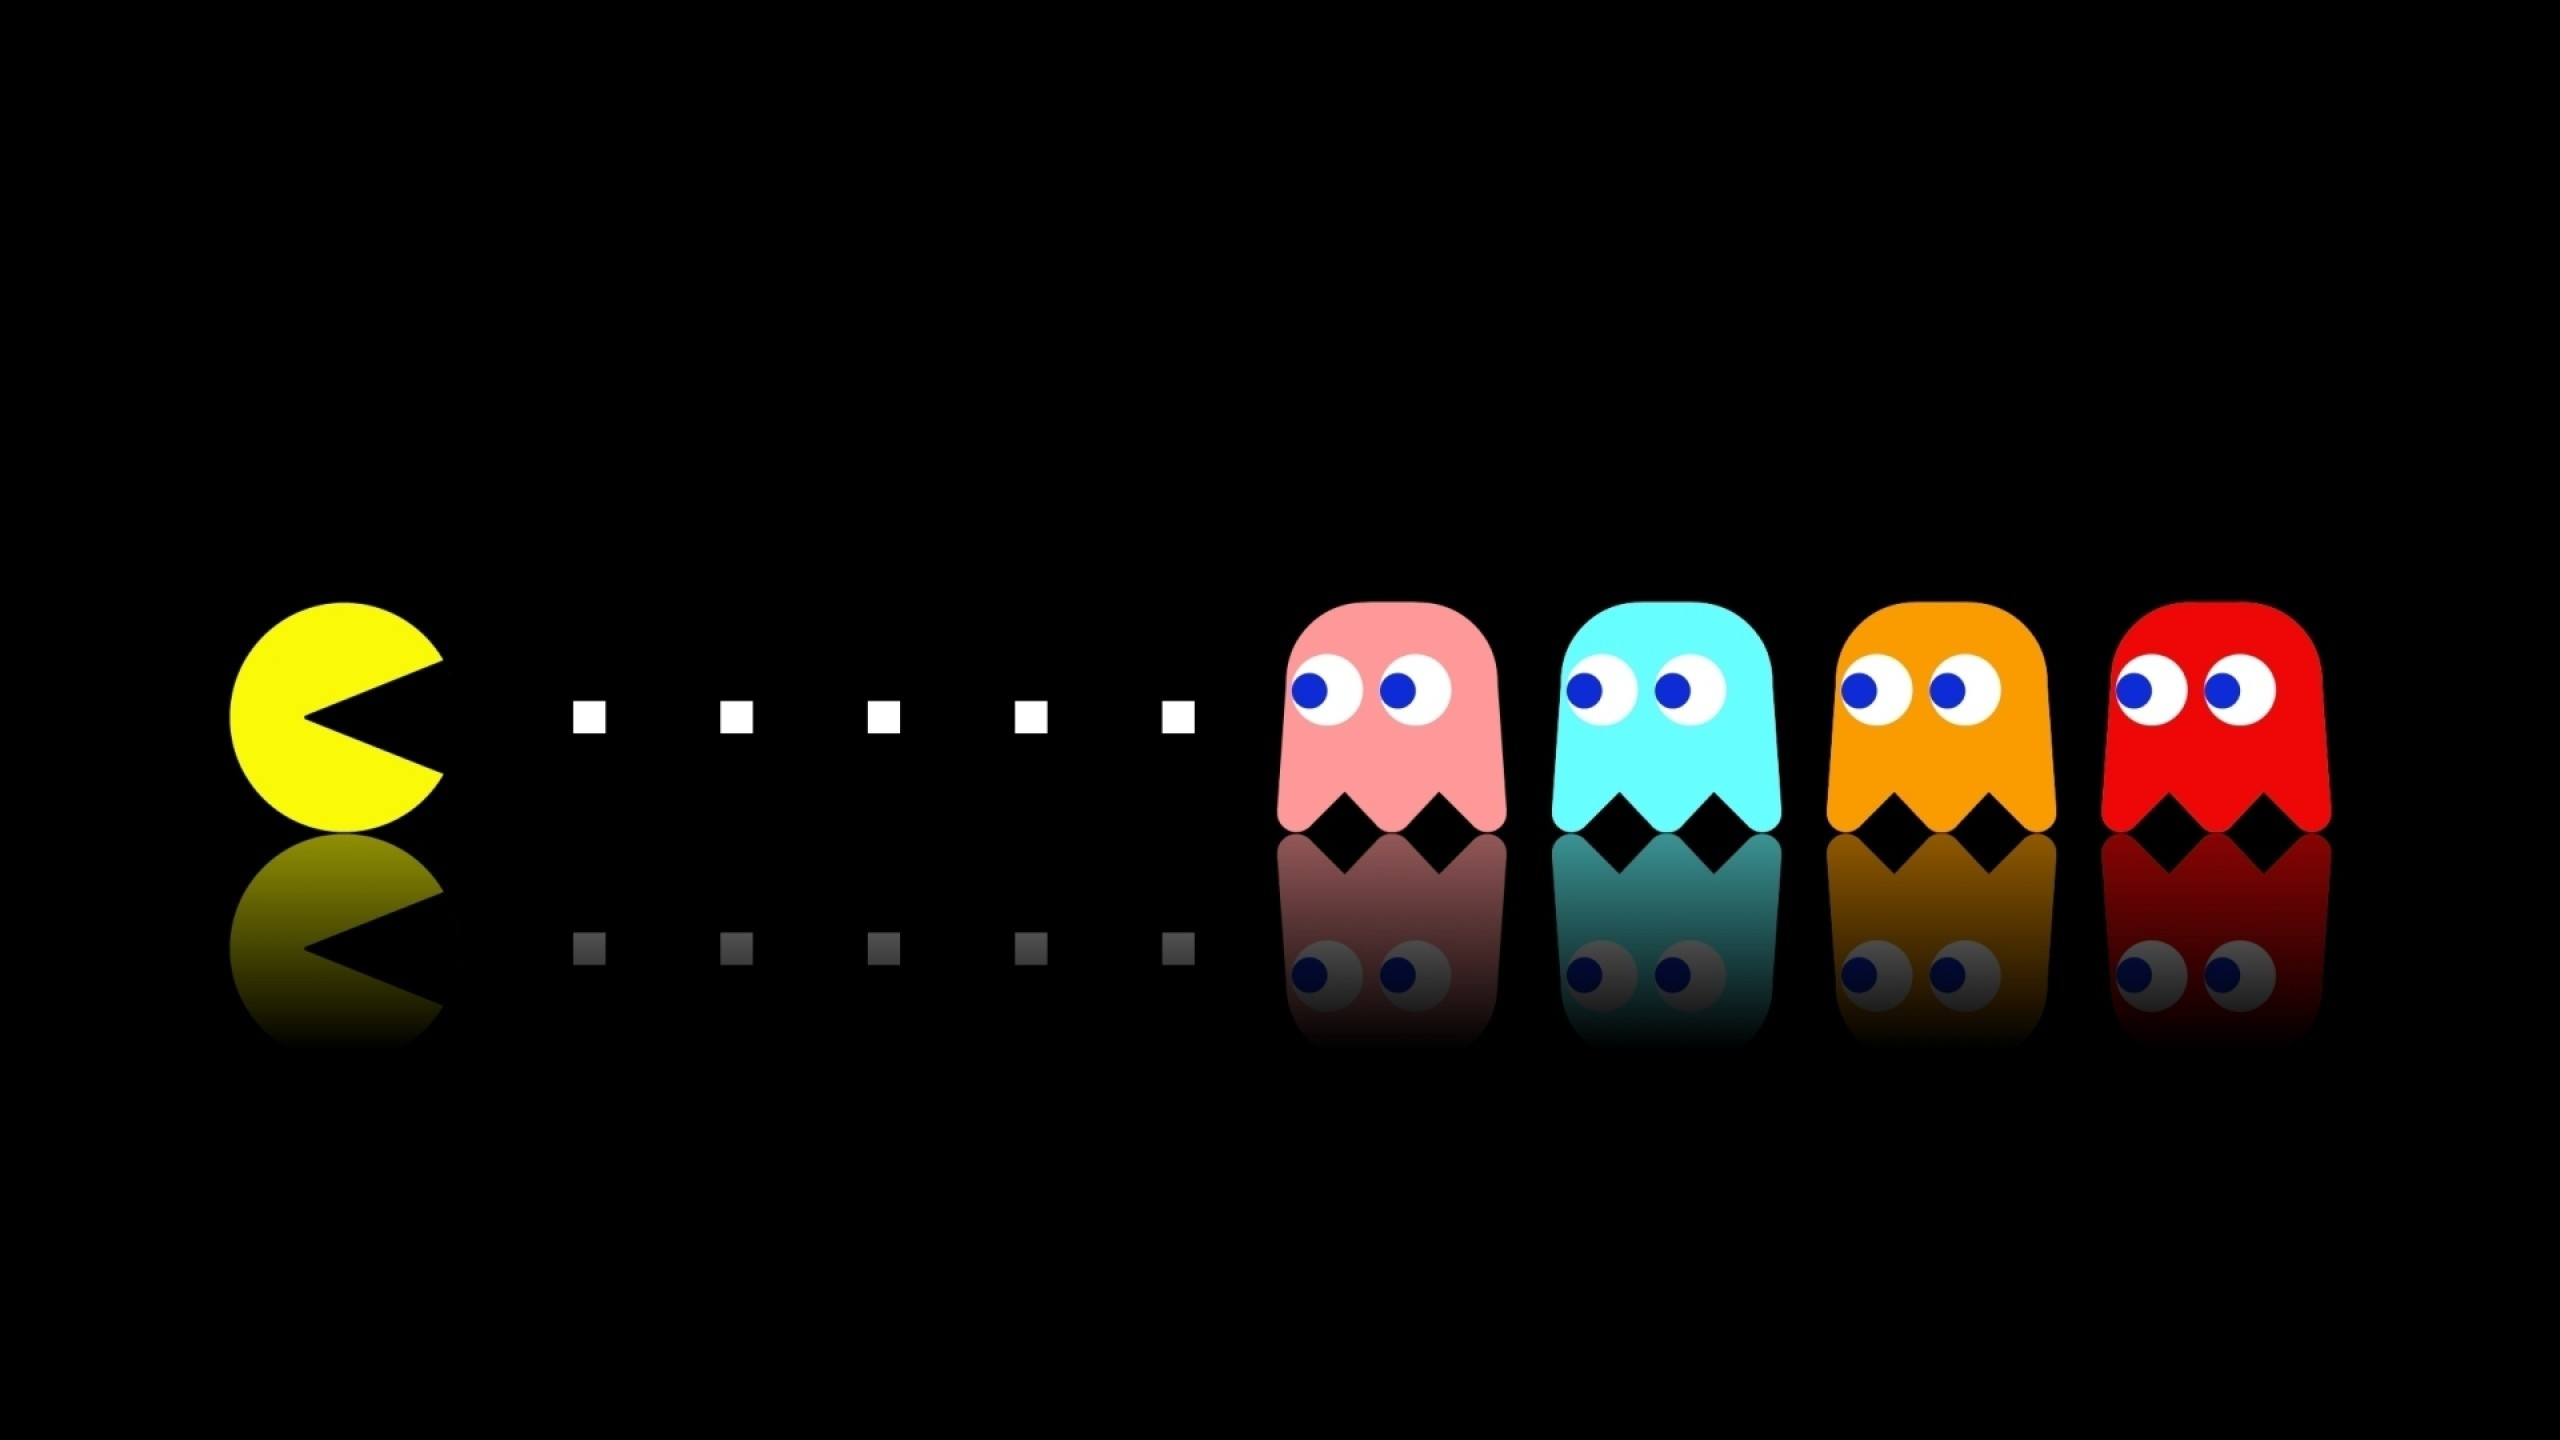 Pacman, Game, Multi-colored, Eating Wallpaper, Background Mac .